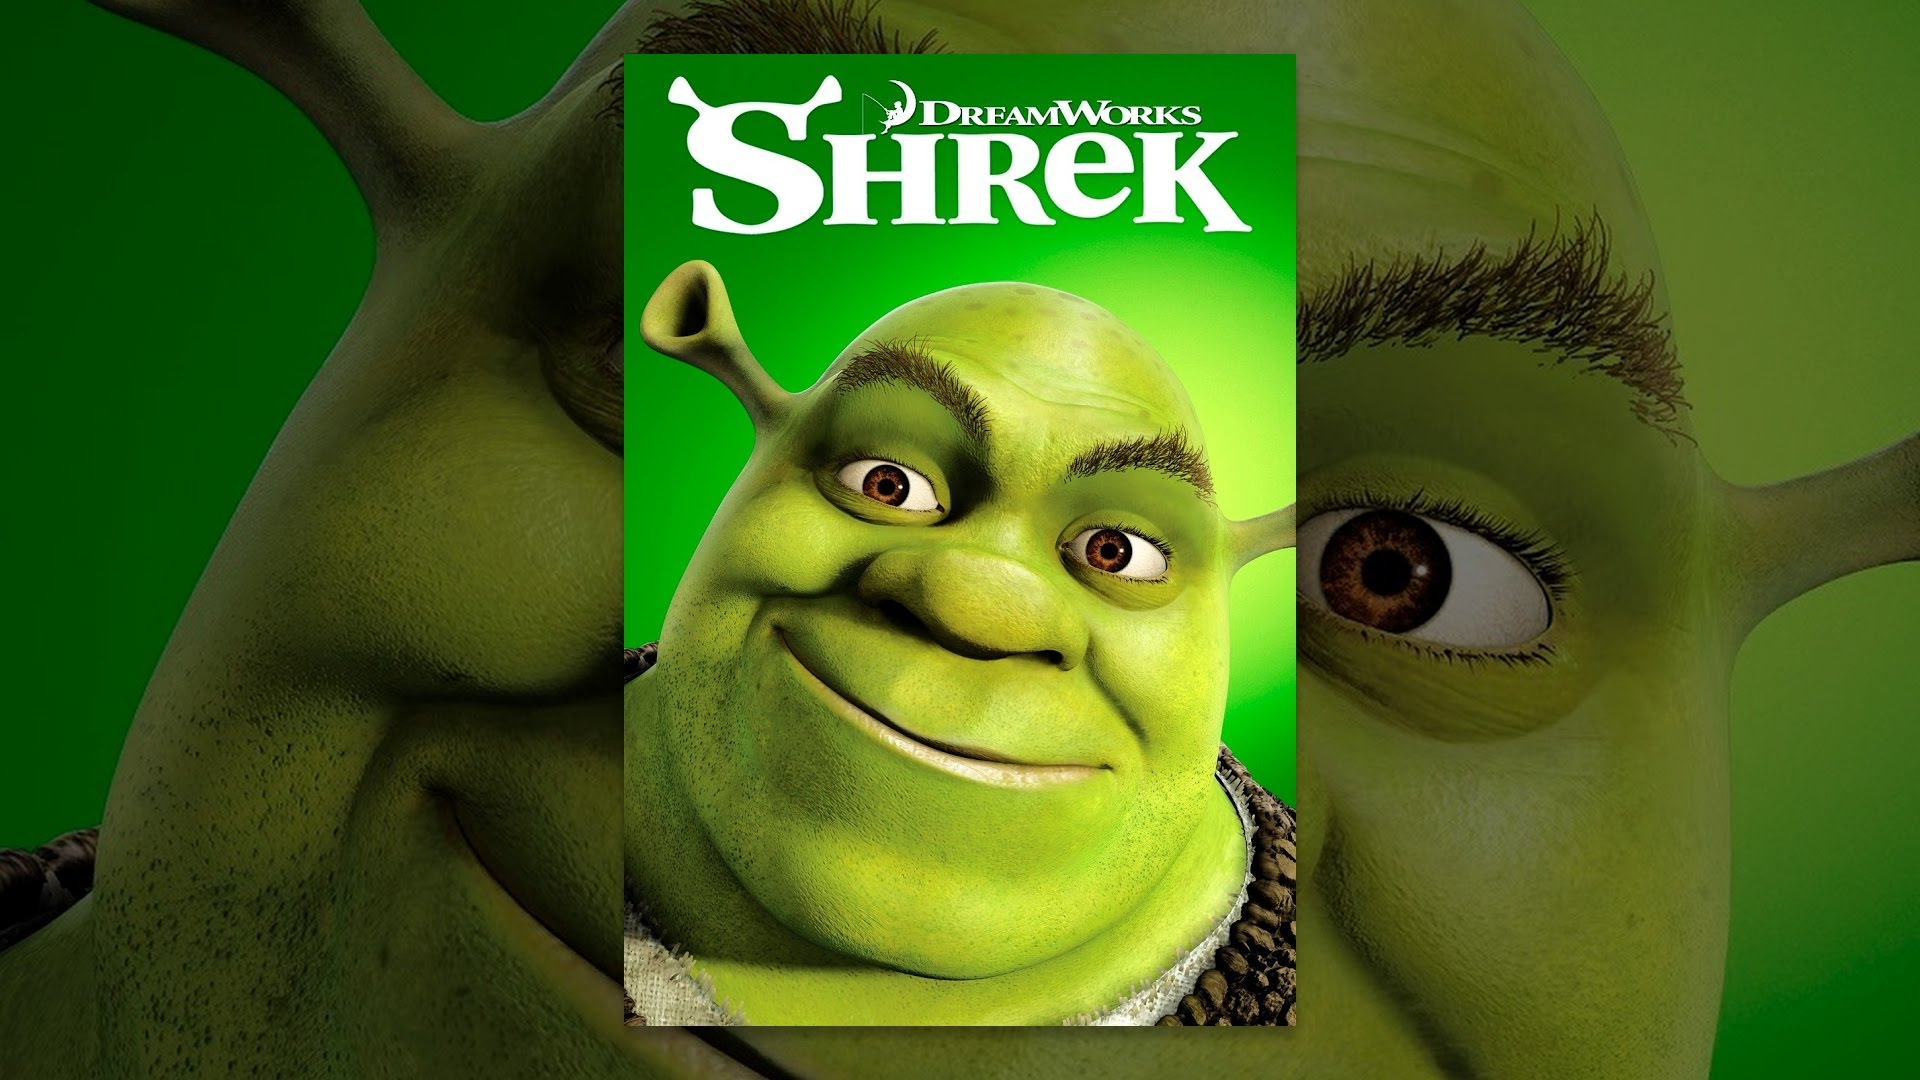 the movie shrek and sociology Movie application in the movie shrek, the fairytale is not you typical version of what we believe to be a happy ending in our society shrek demonstrates the conventional prototype of a recognizable fairytale.